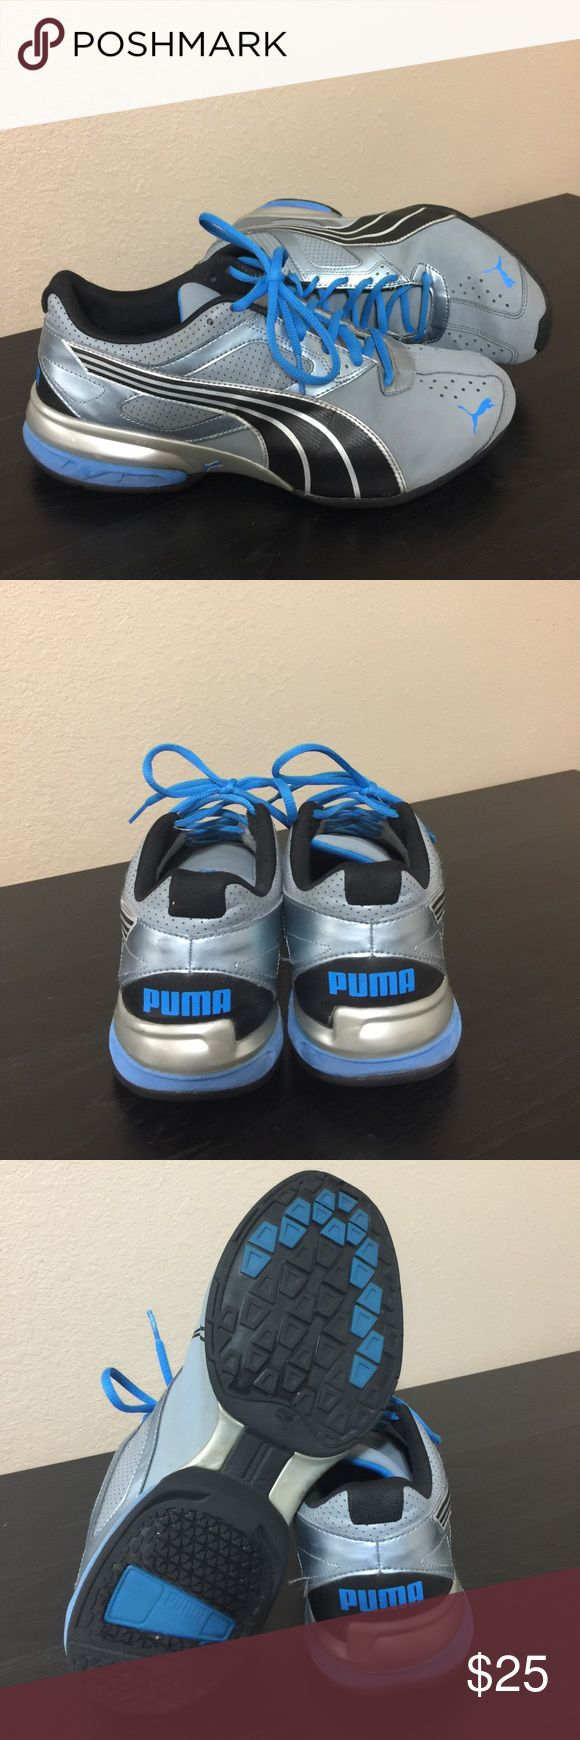 Men's PUMA running shoes Men's PUMA running shoes. Slight wear. Still in great shape. Puma Shoes Athletic Shoes